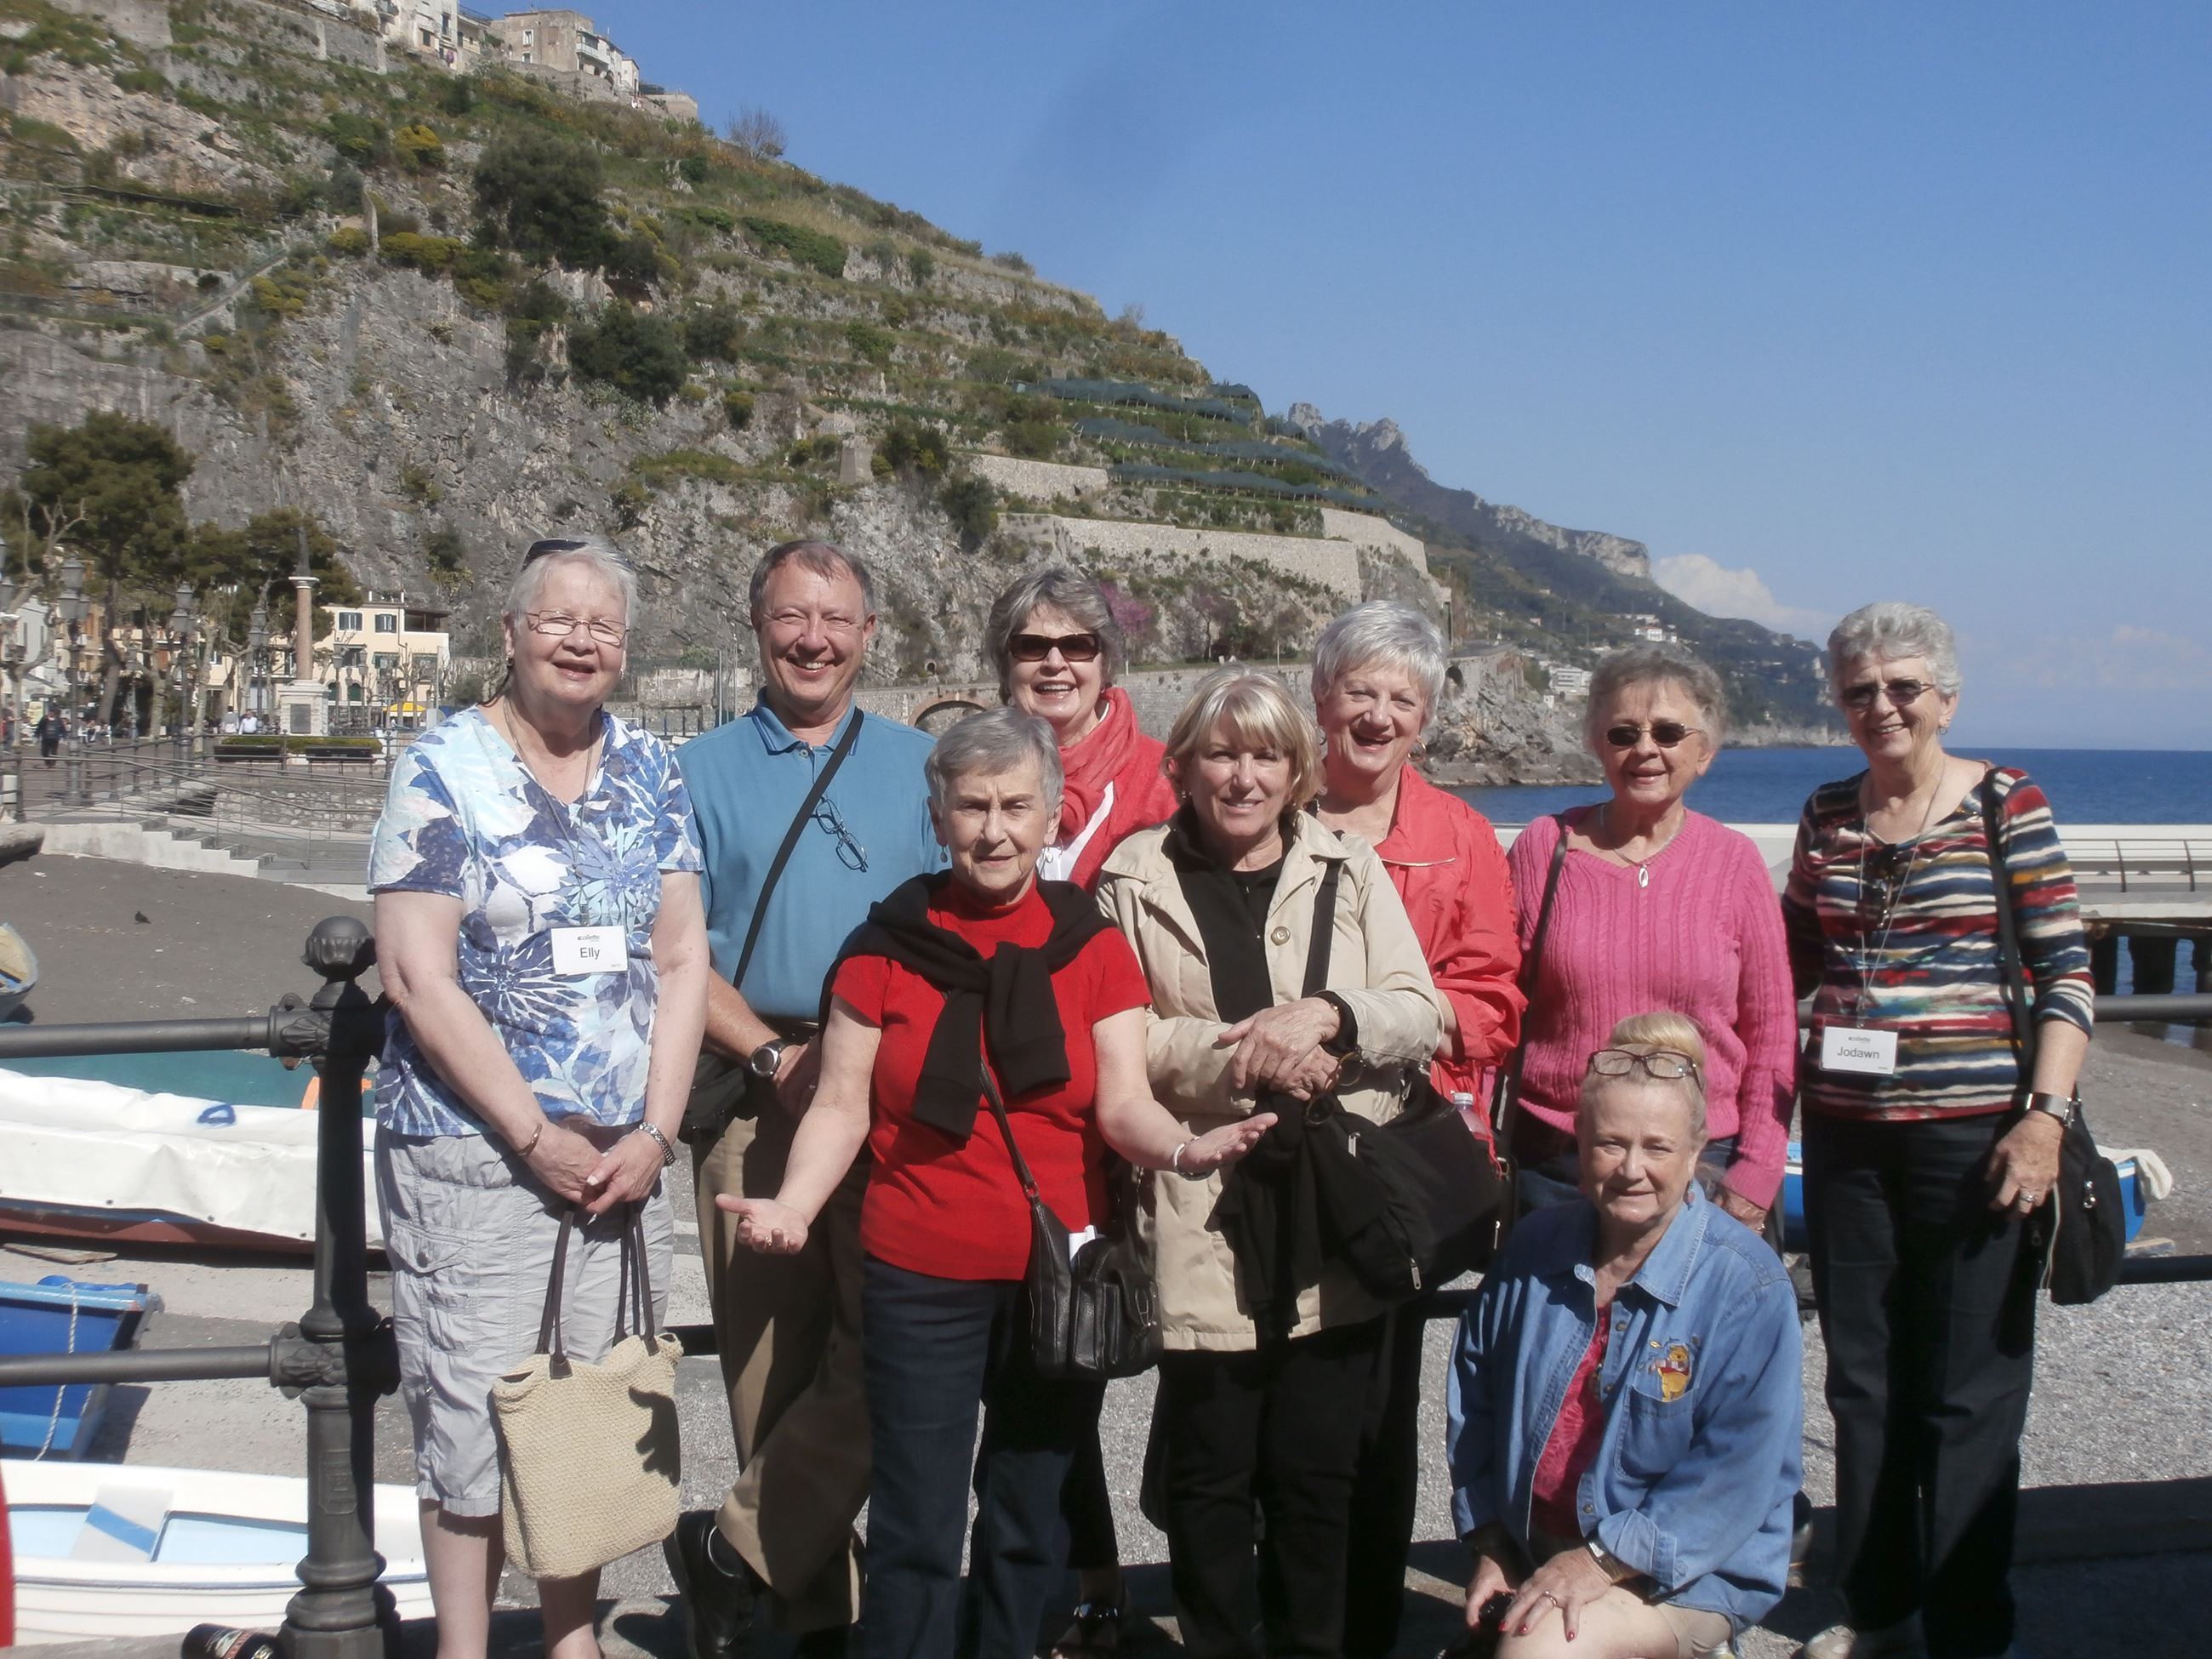 group of travelers posed for a photo in Amalfi, Italy